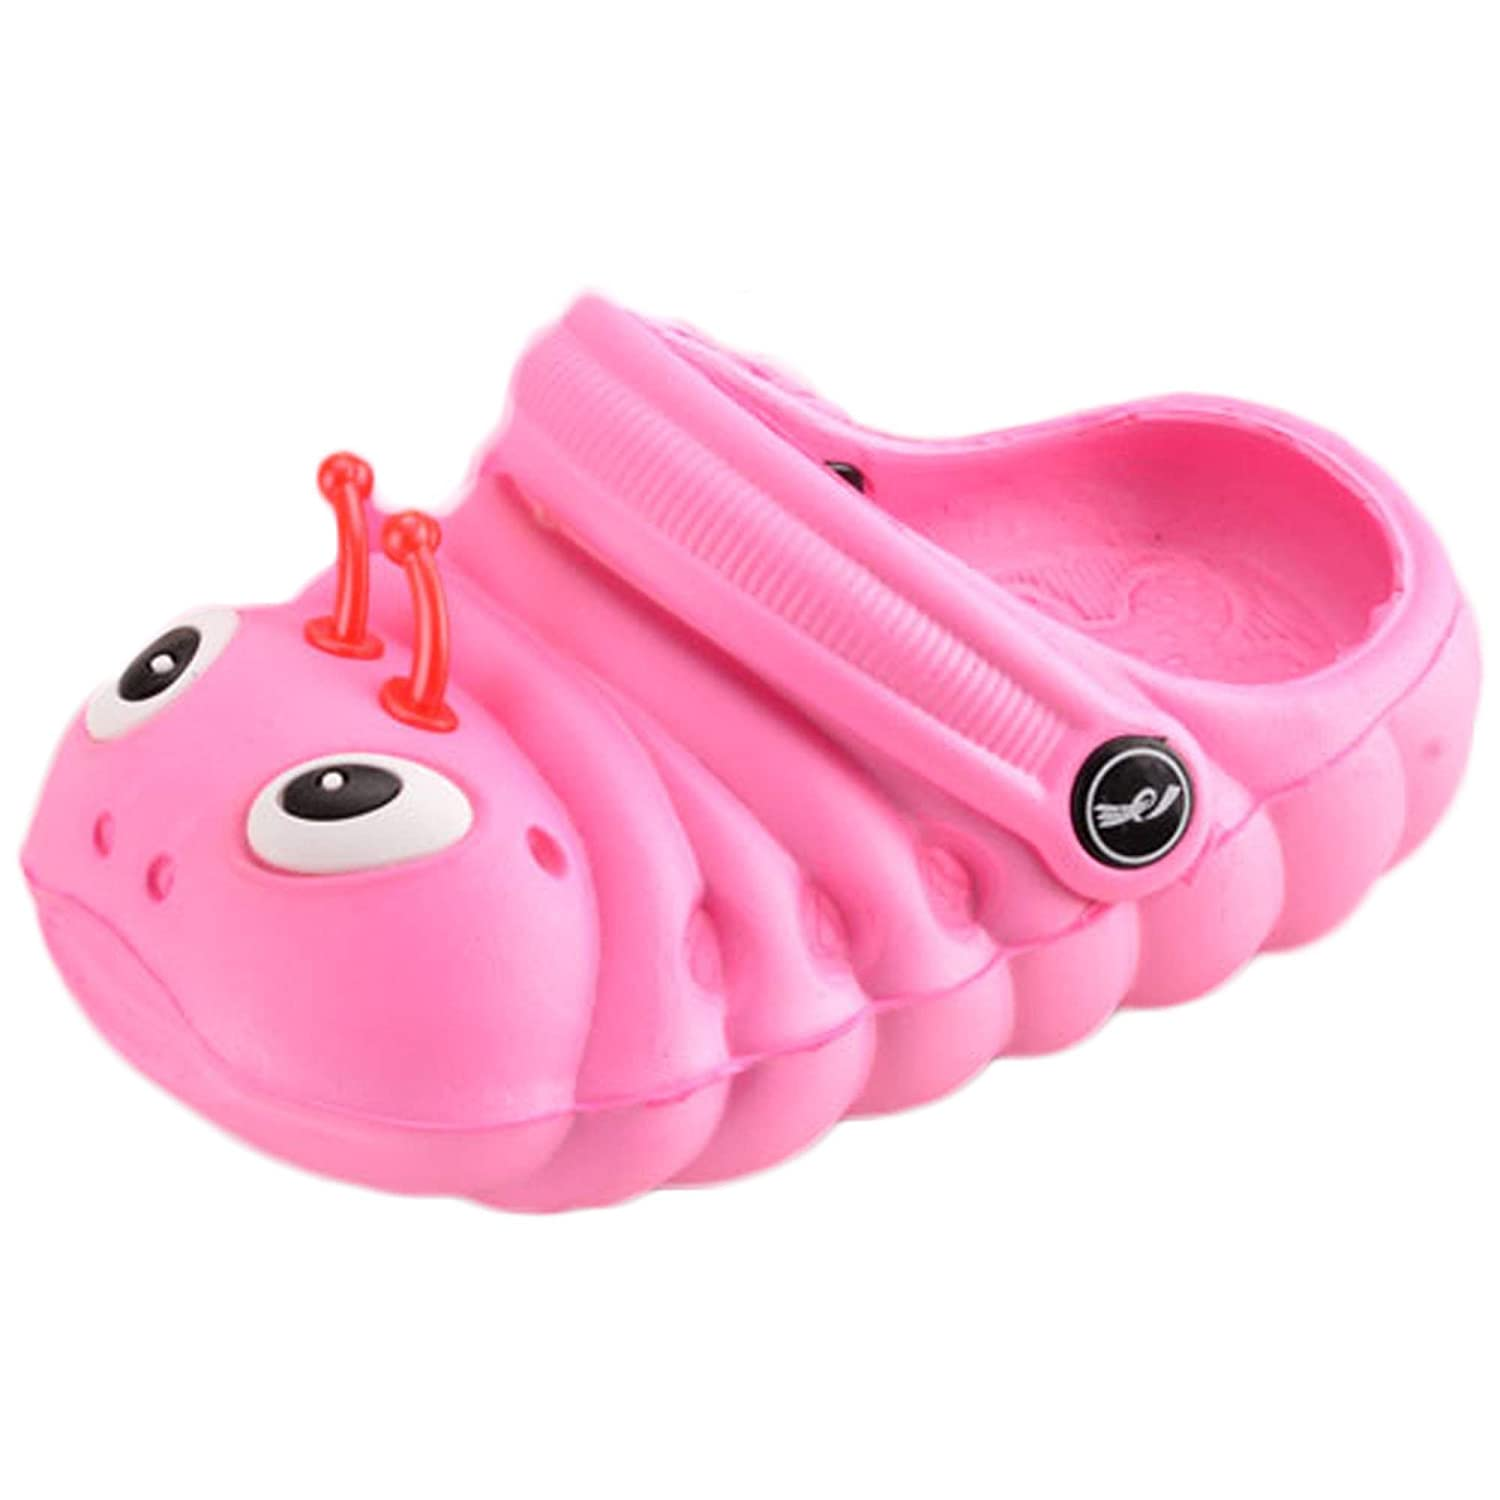 Fanala Kids Children Toddler Girl Beach Clogs Shoes Sandals Slipper